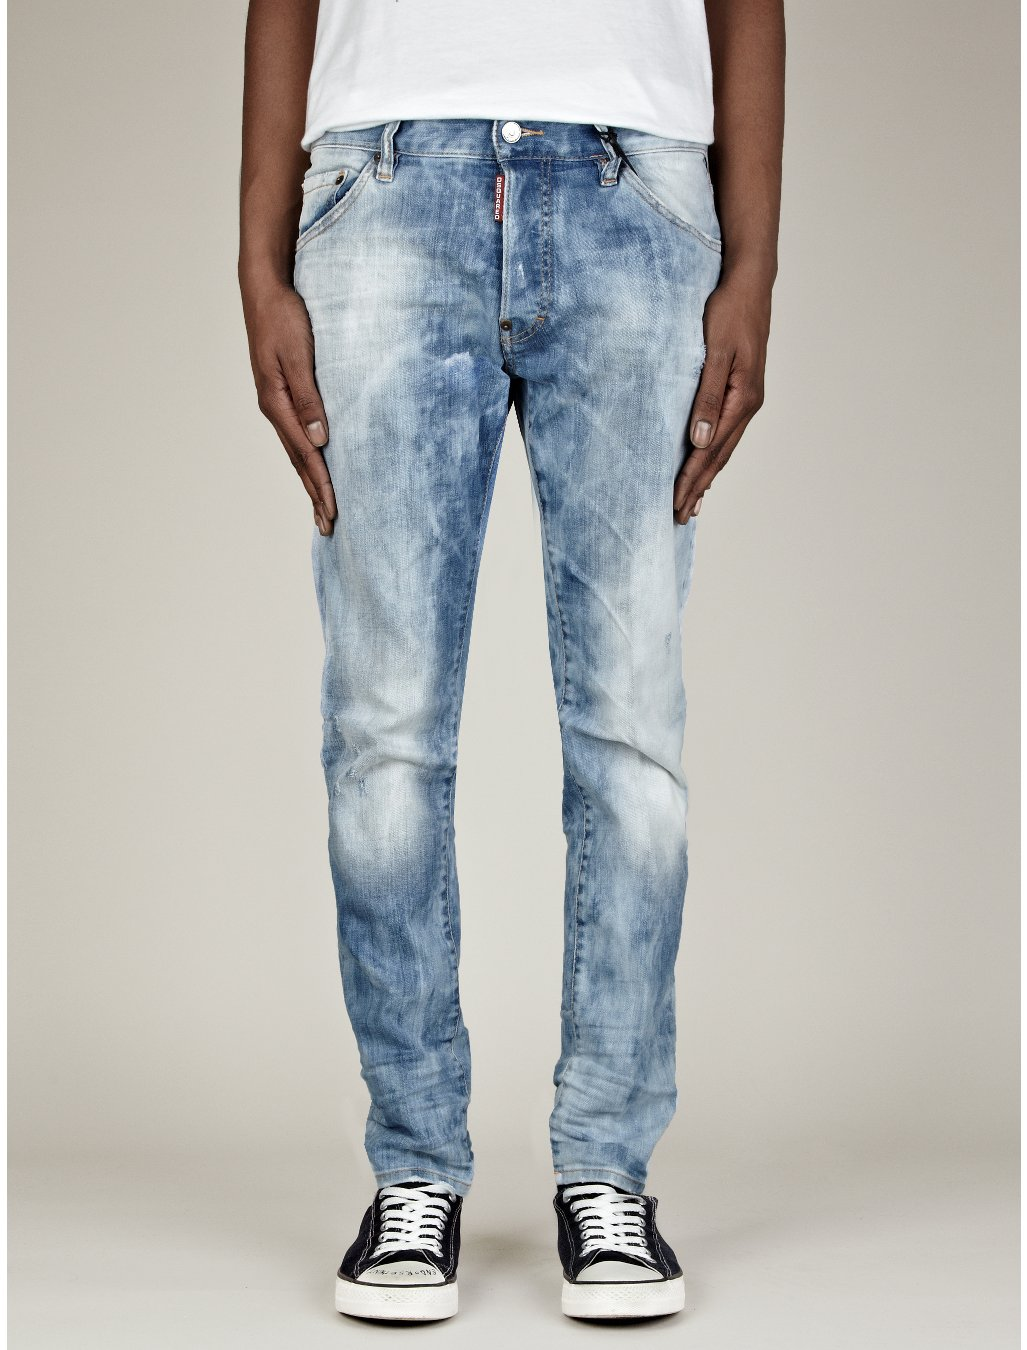 Find great deals on eBay for bleach jeans men. Shop with confidence.